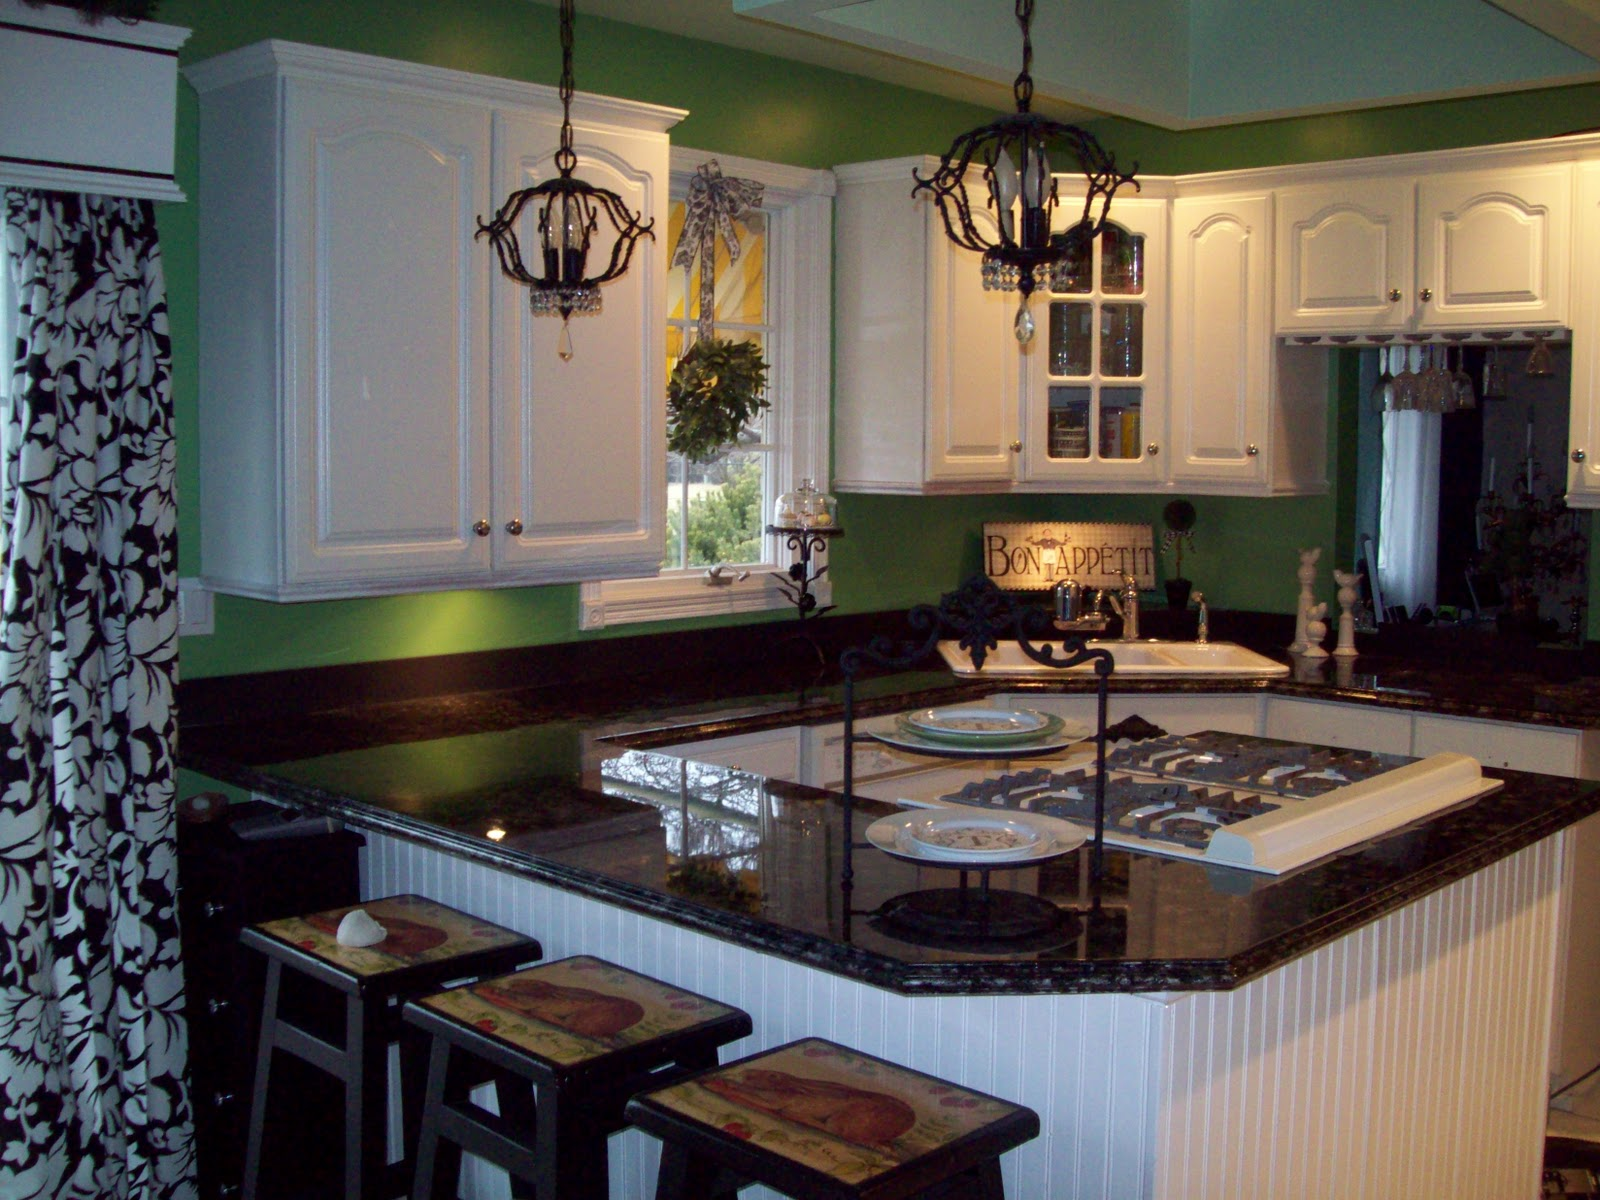 Countertop Makeover : ... the countertops and I still have one box left for the backsplashes